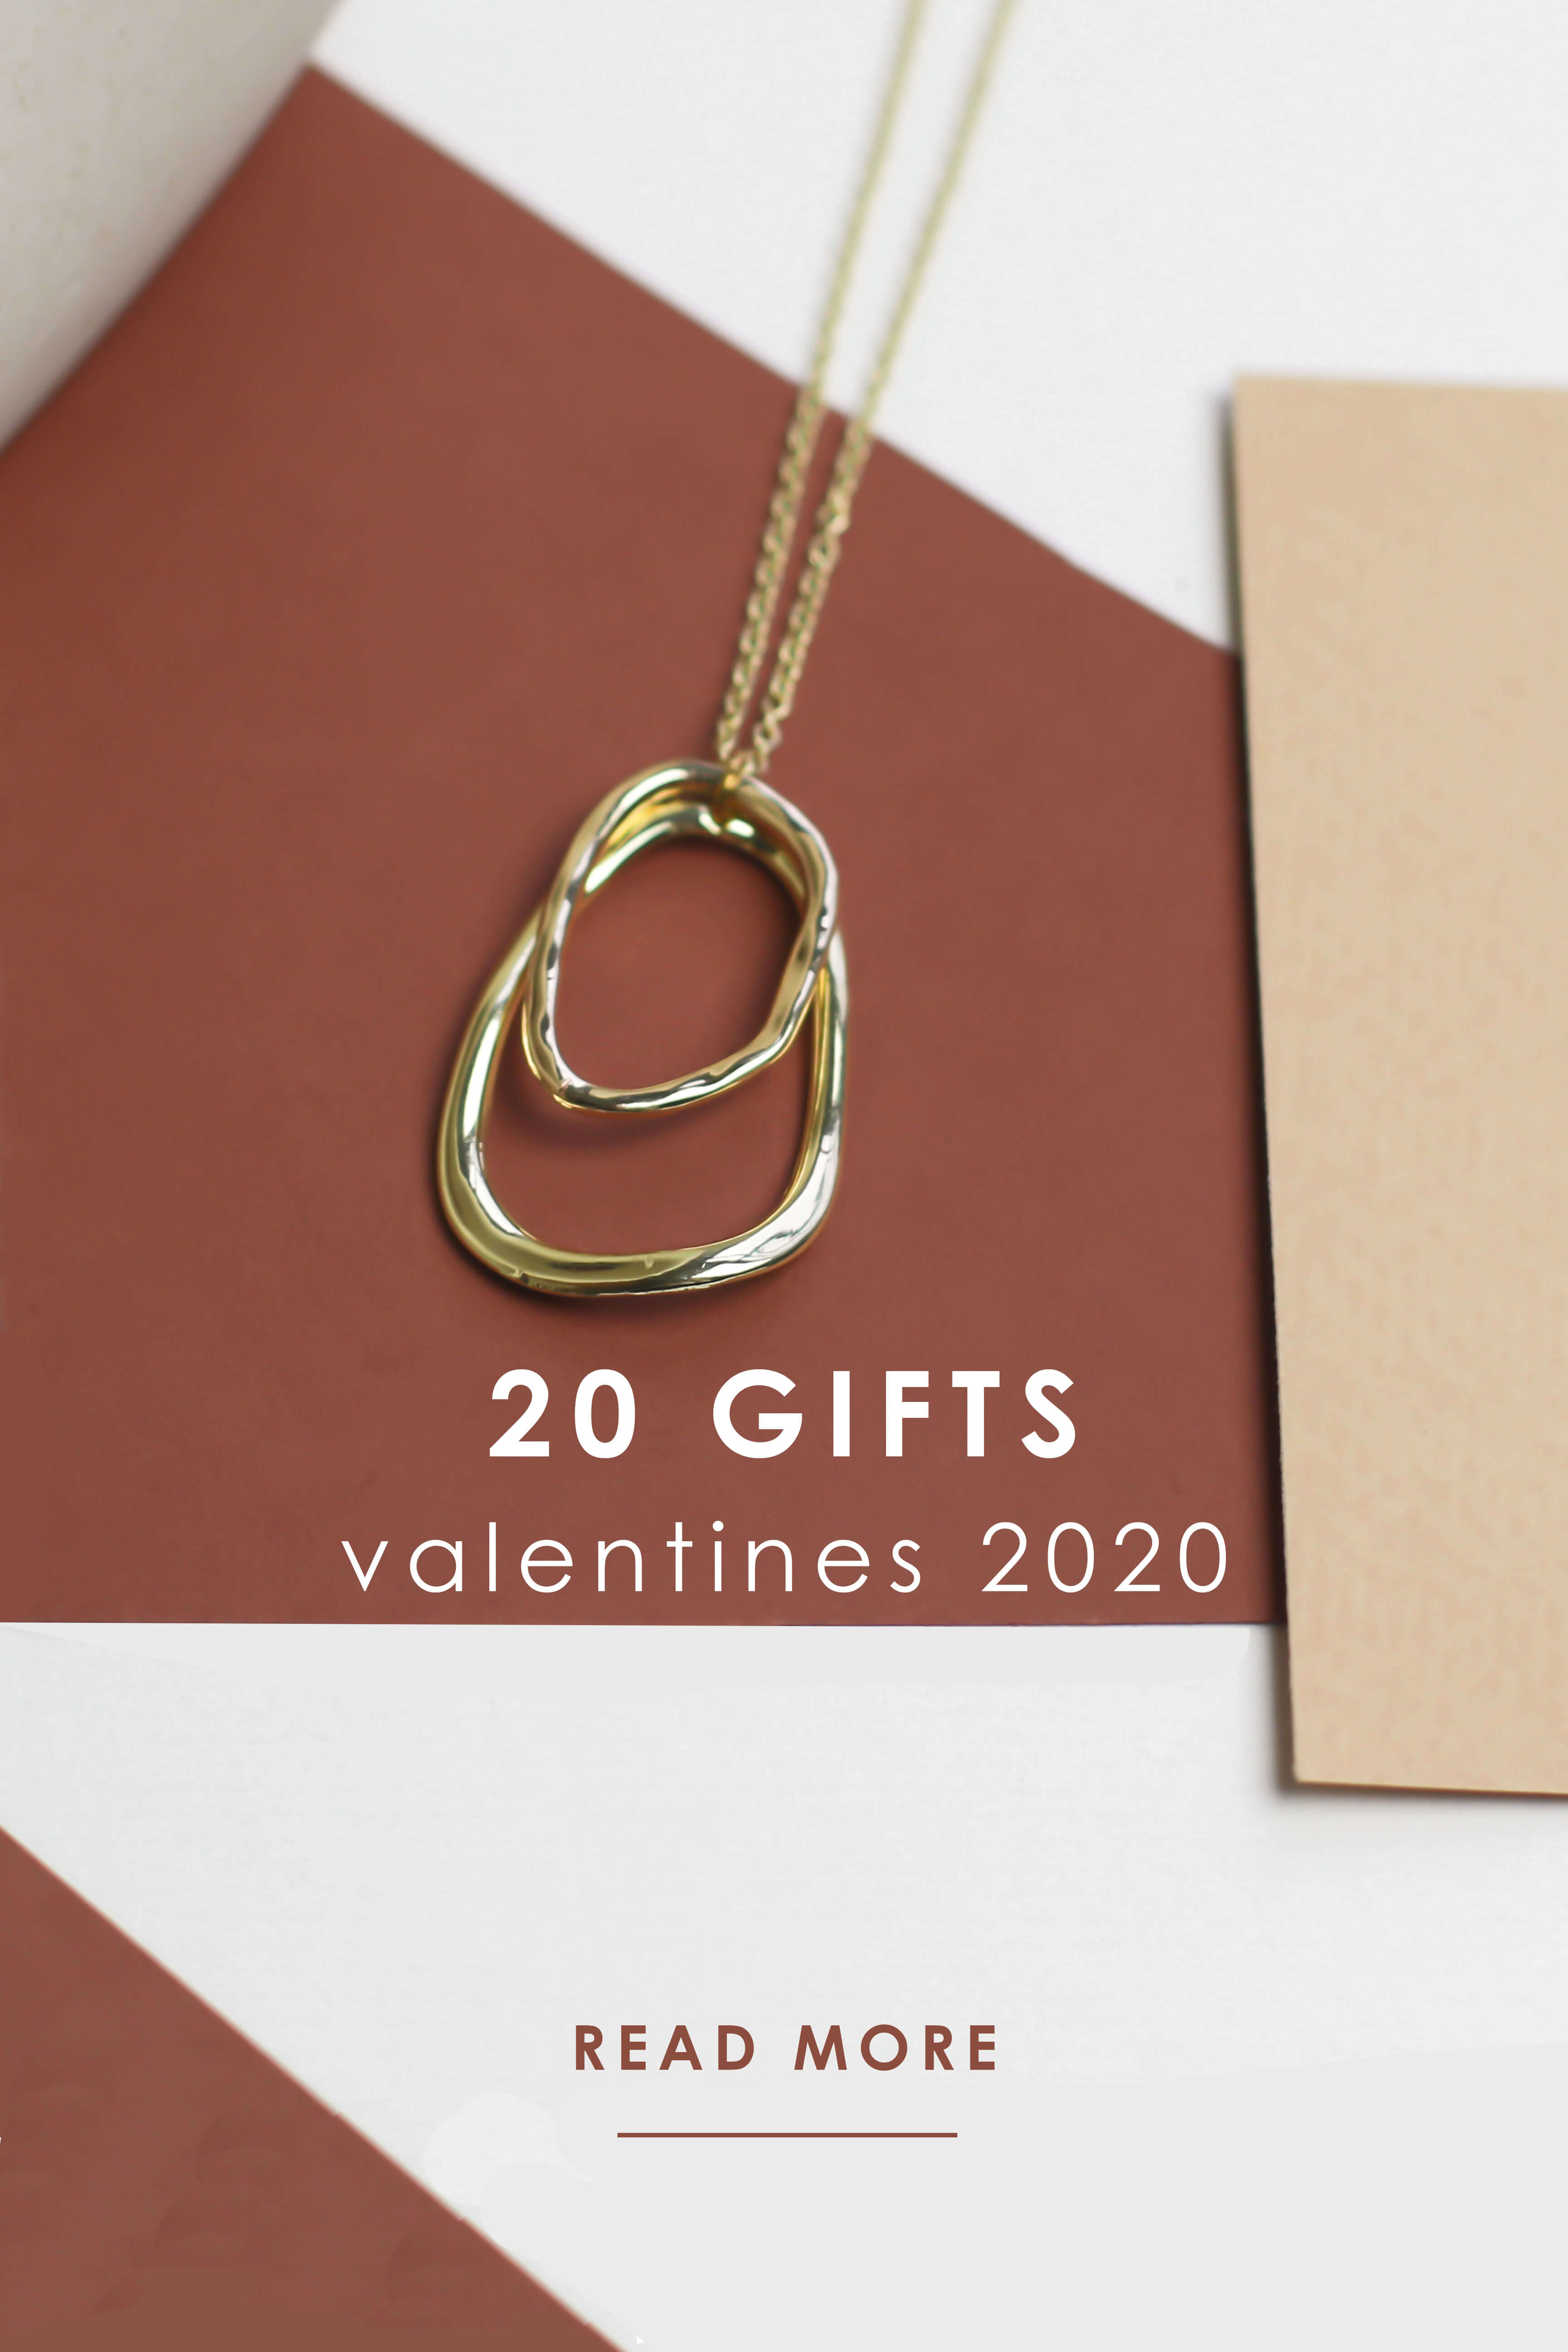 20 Gifts / Valentines 2020